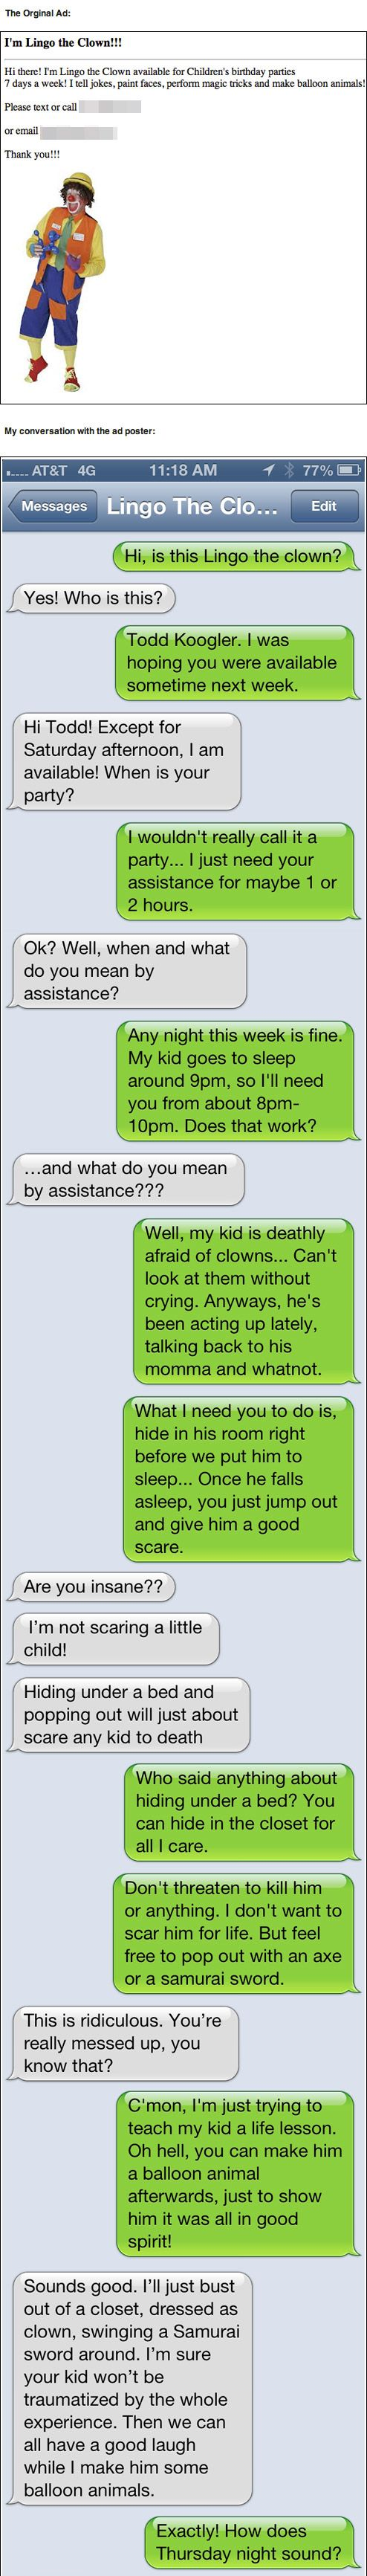 omg..this is hilarious. I would HATE if my parents did this to me, but god it would have made for a good story.